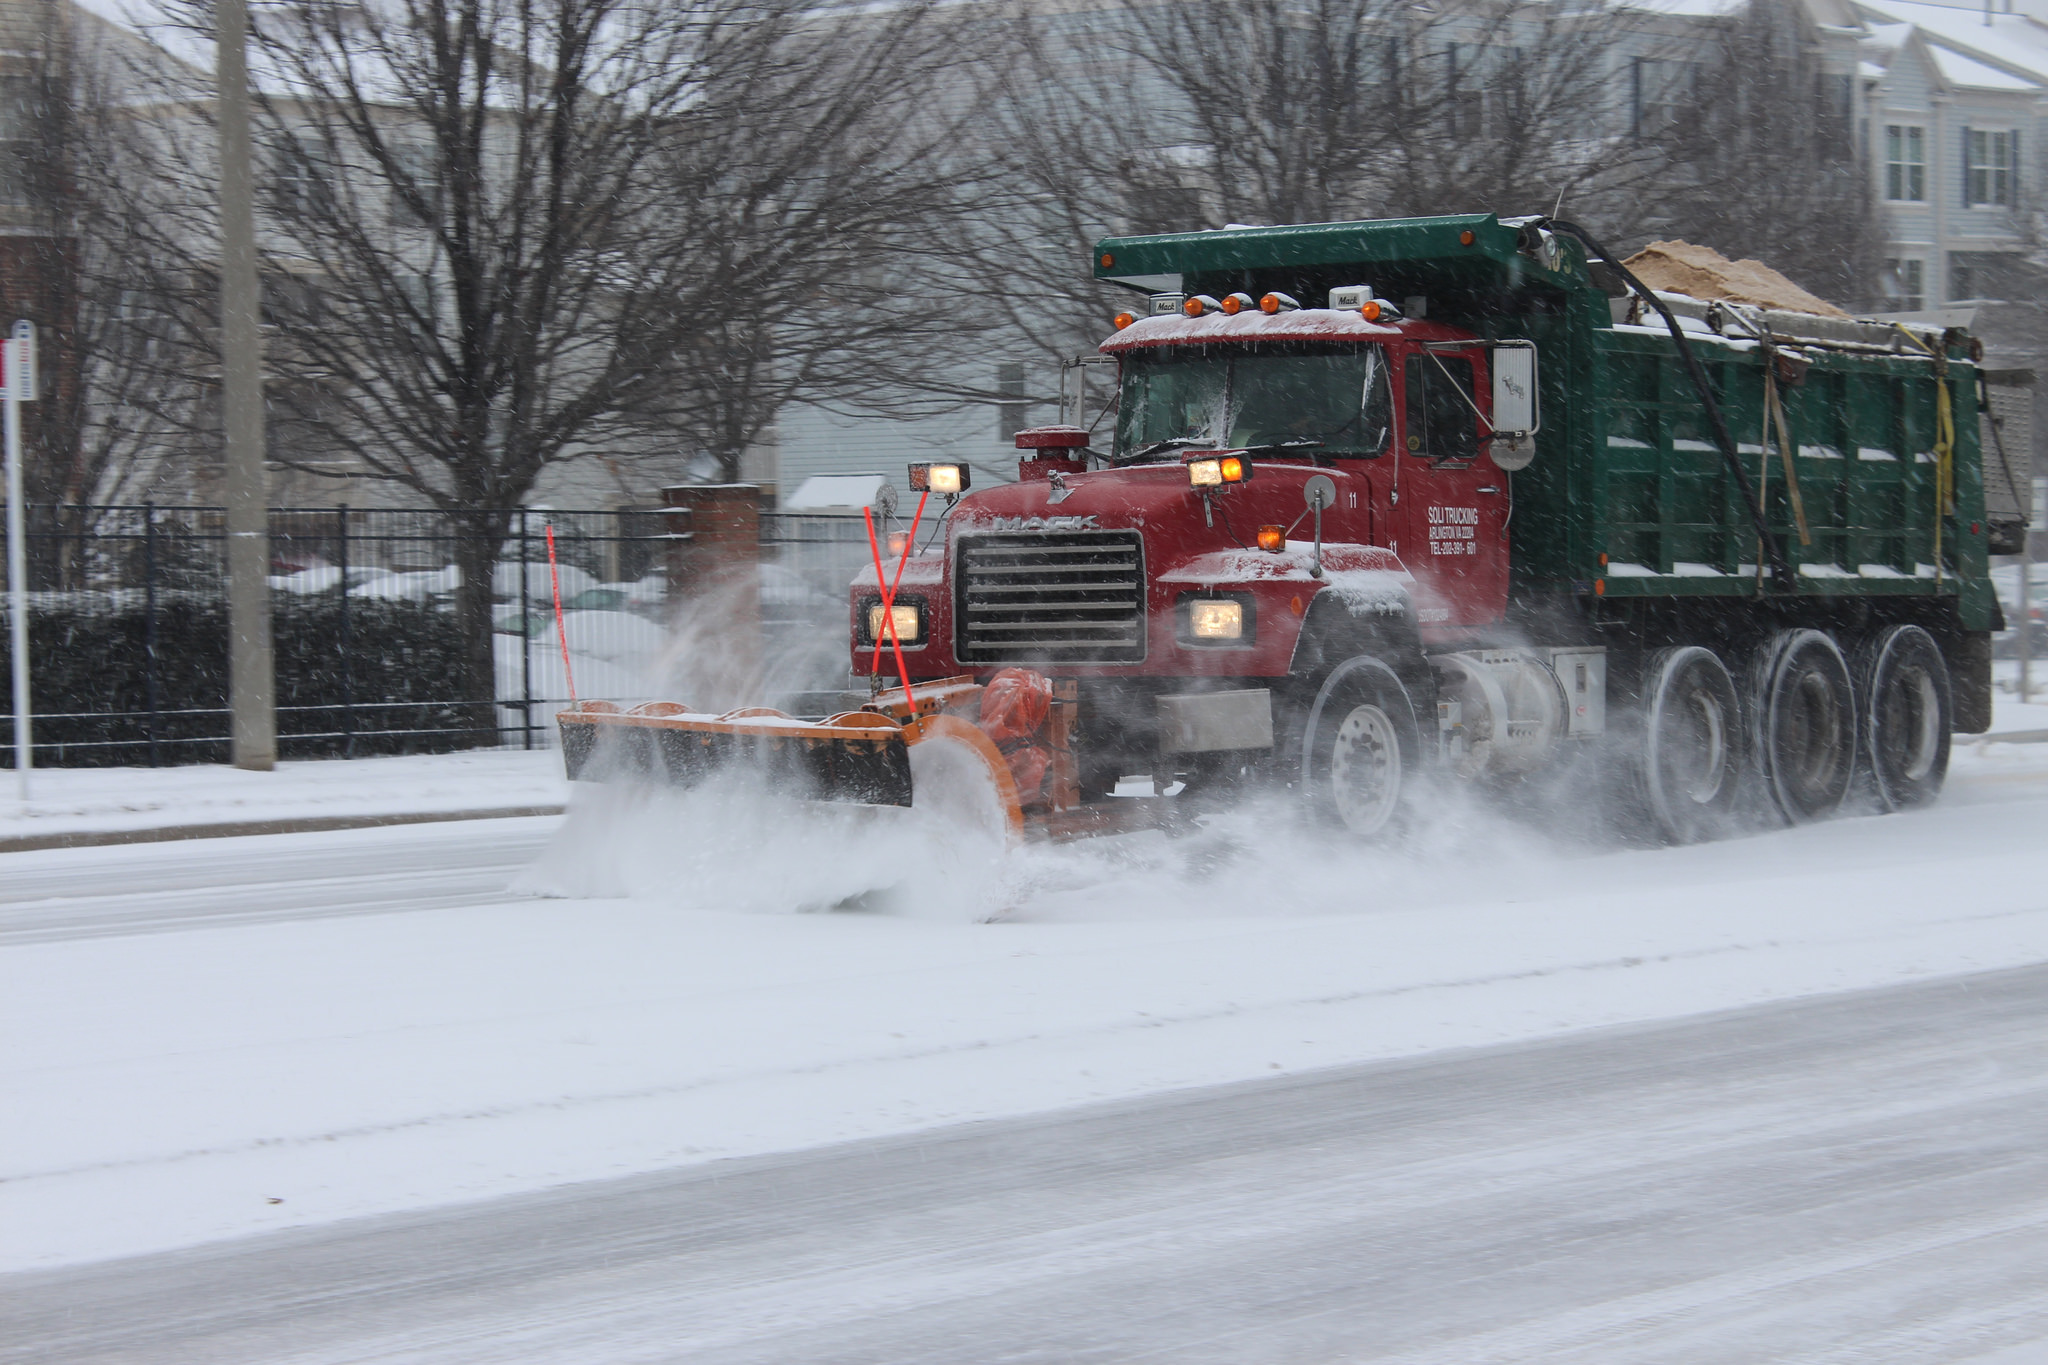 Before performing any maintenance work, roads must be plowed.